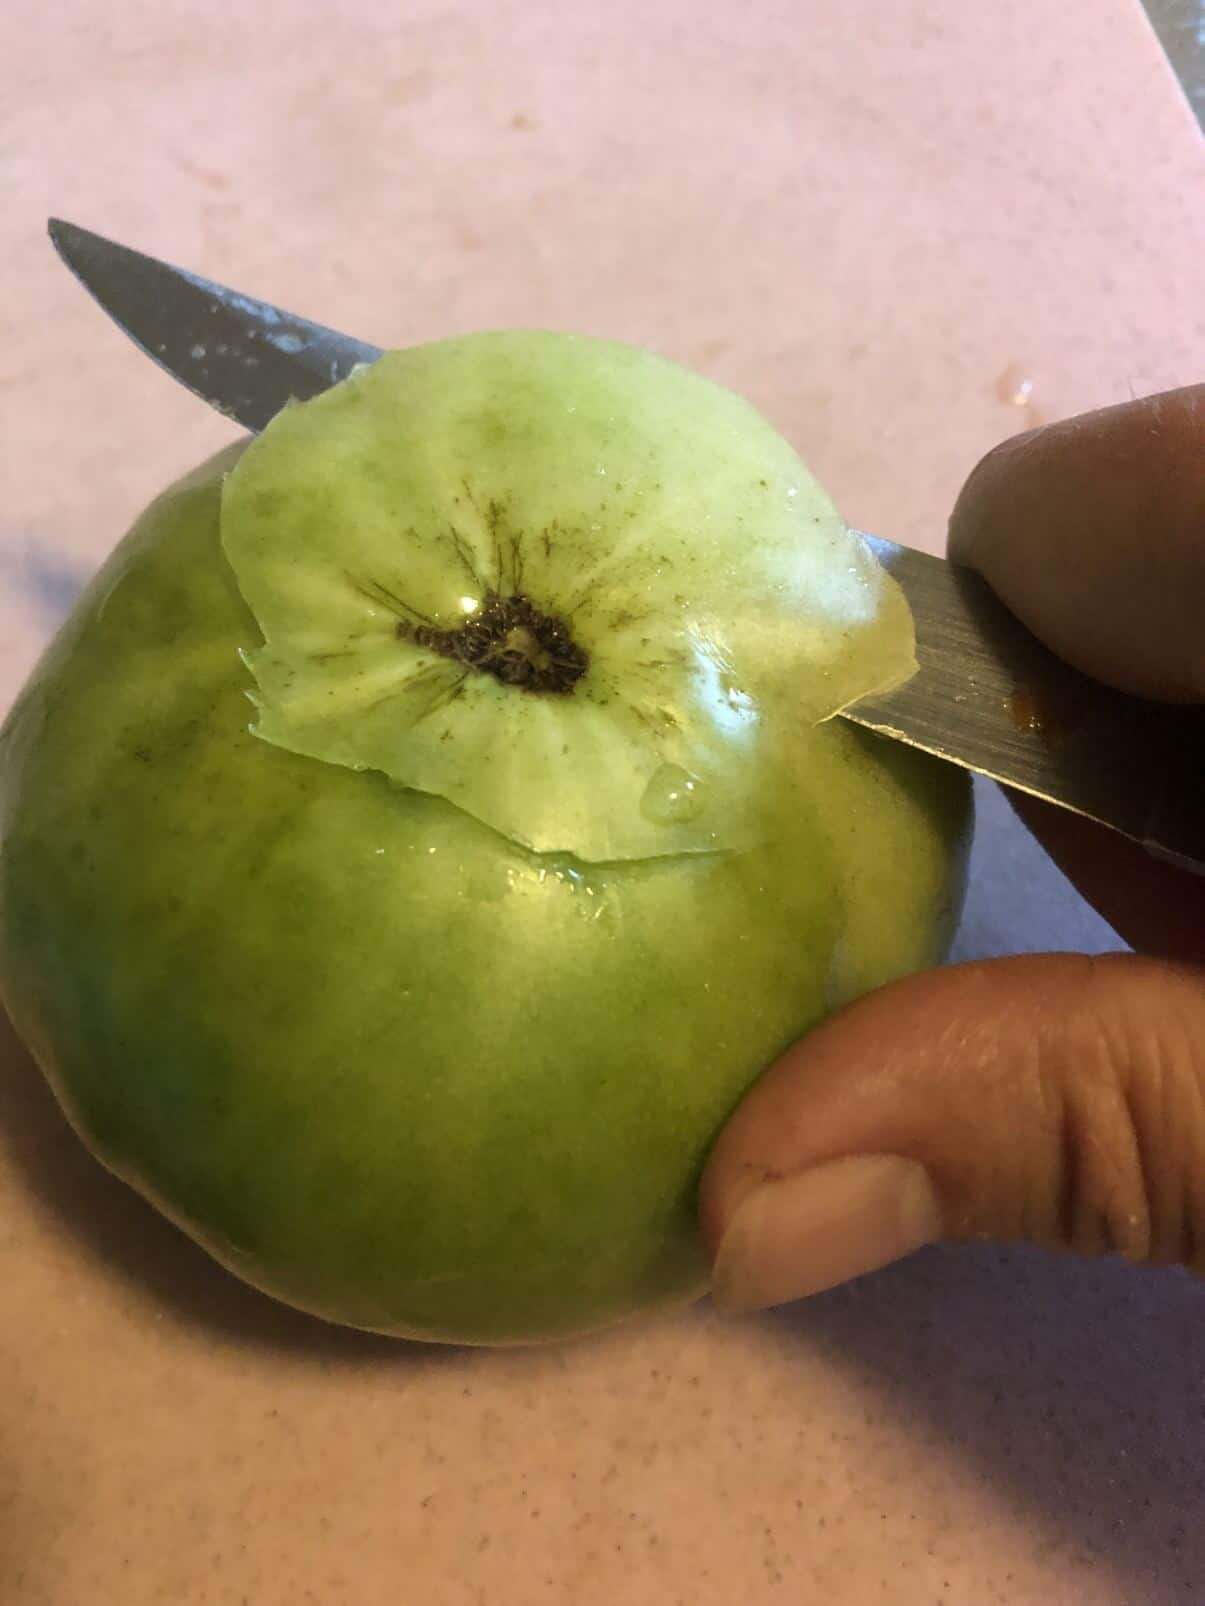 cutting blossom end off green tomato